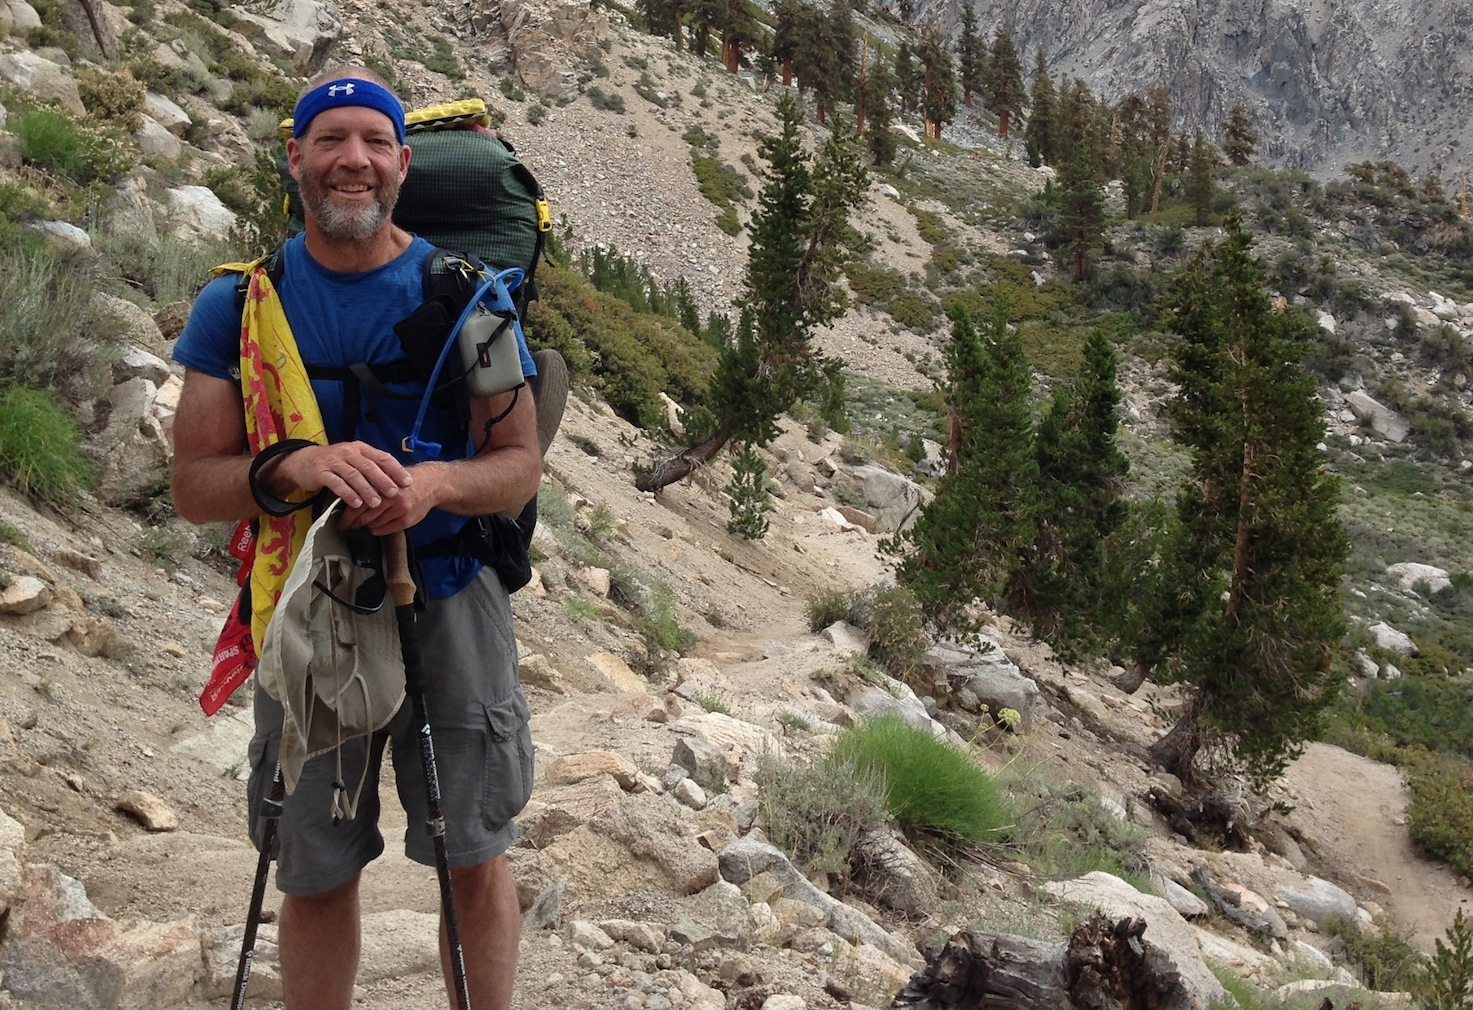 Don, a wicked strong hiker from Connecticut, on his way back up to Kearsarge Pass on a rainy day after his second visit to the Mt. Williamson Motel & Base Camp. Don is doing the JMT yoyo!!!